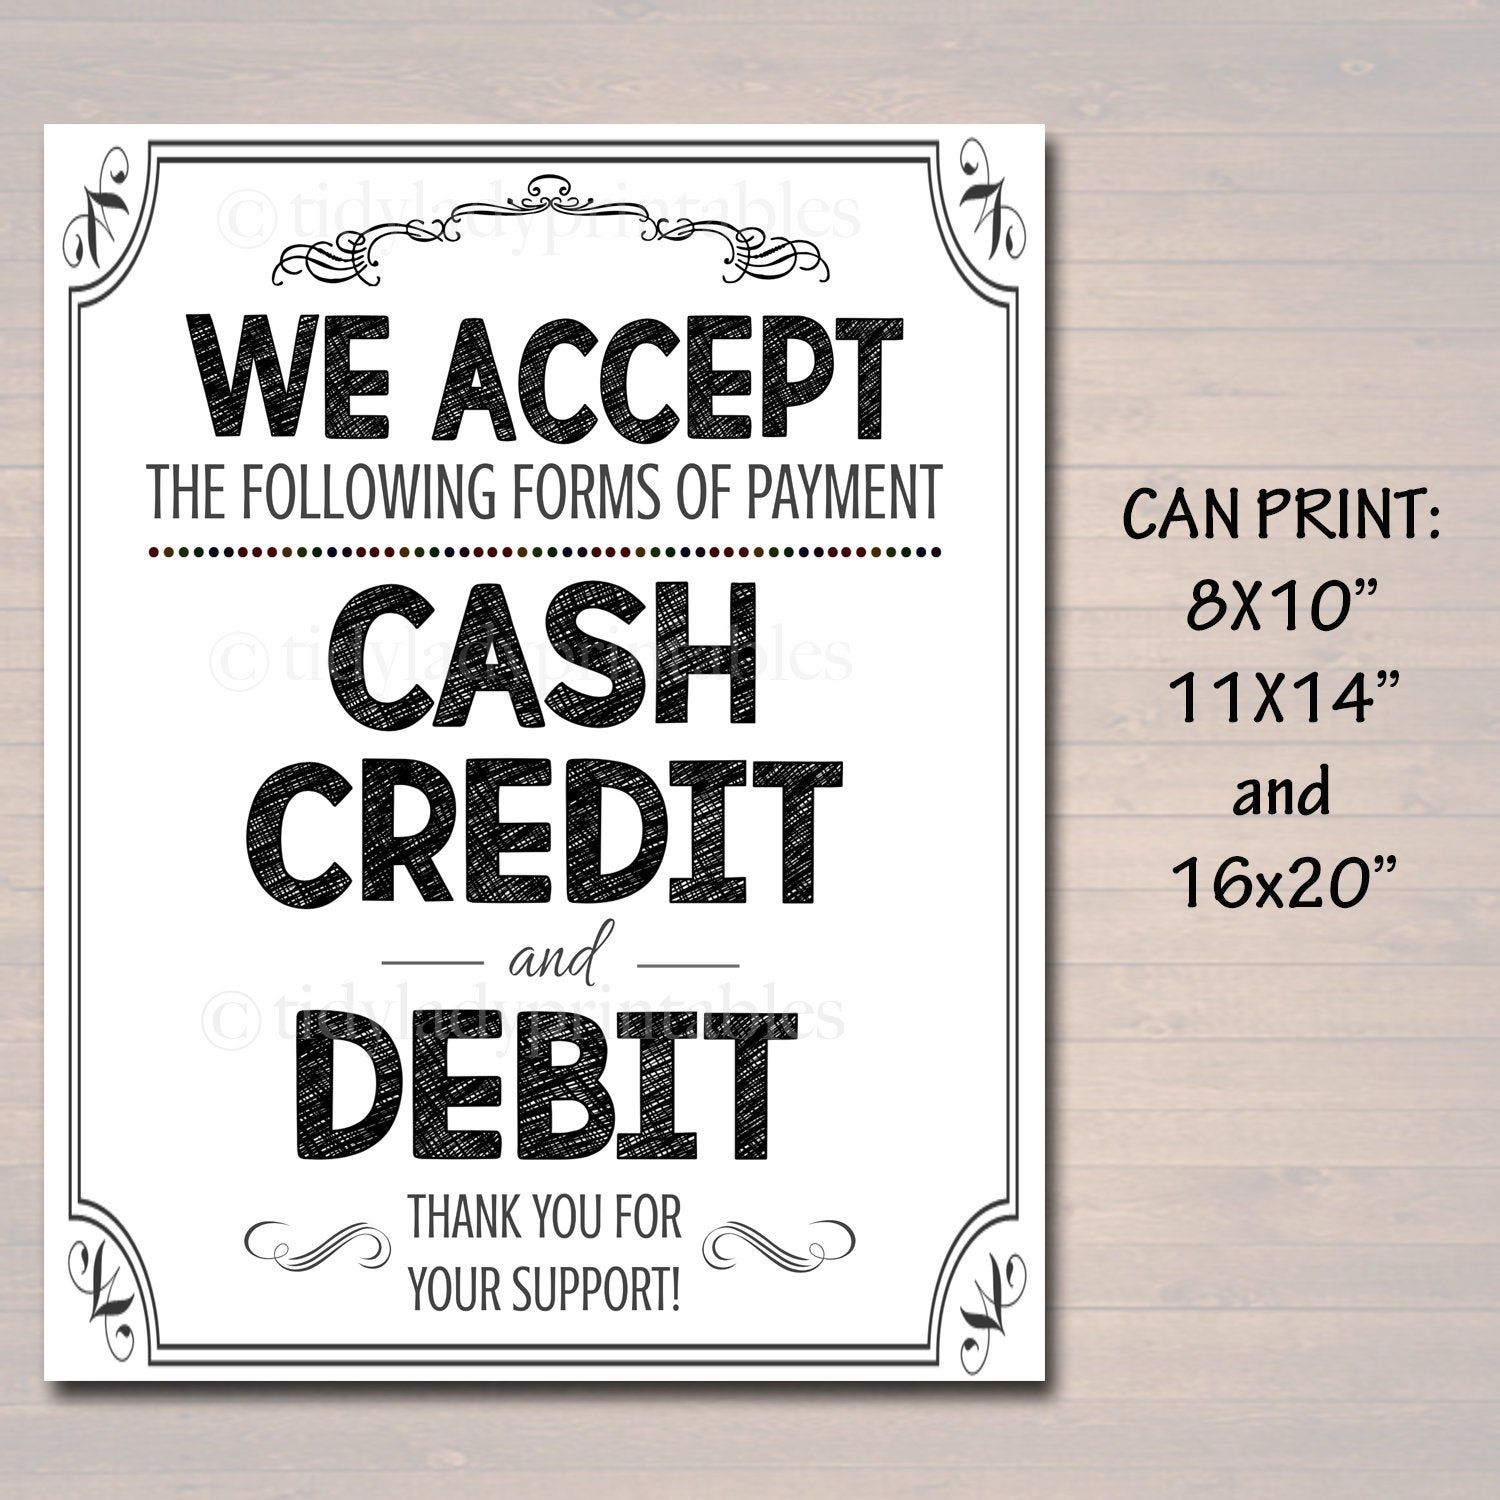 Printable Credit Card Sign Fundraising Booth Bake Sale Etsy Credit Card Sign Craft Sale Bake Sale